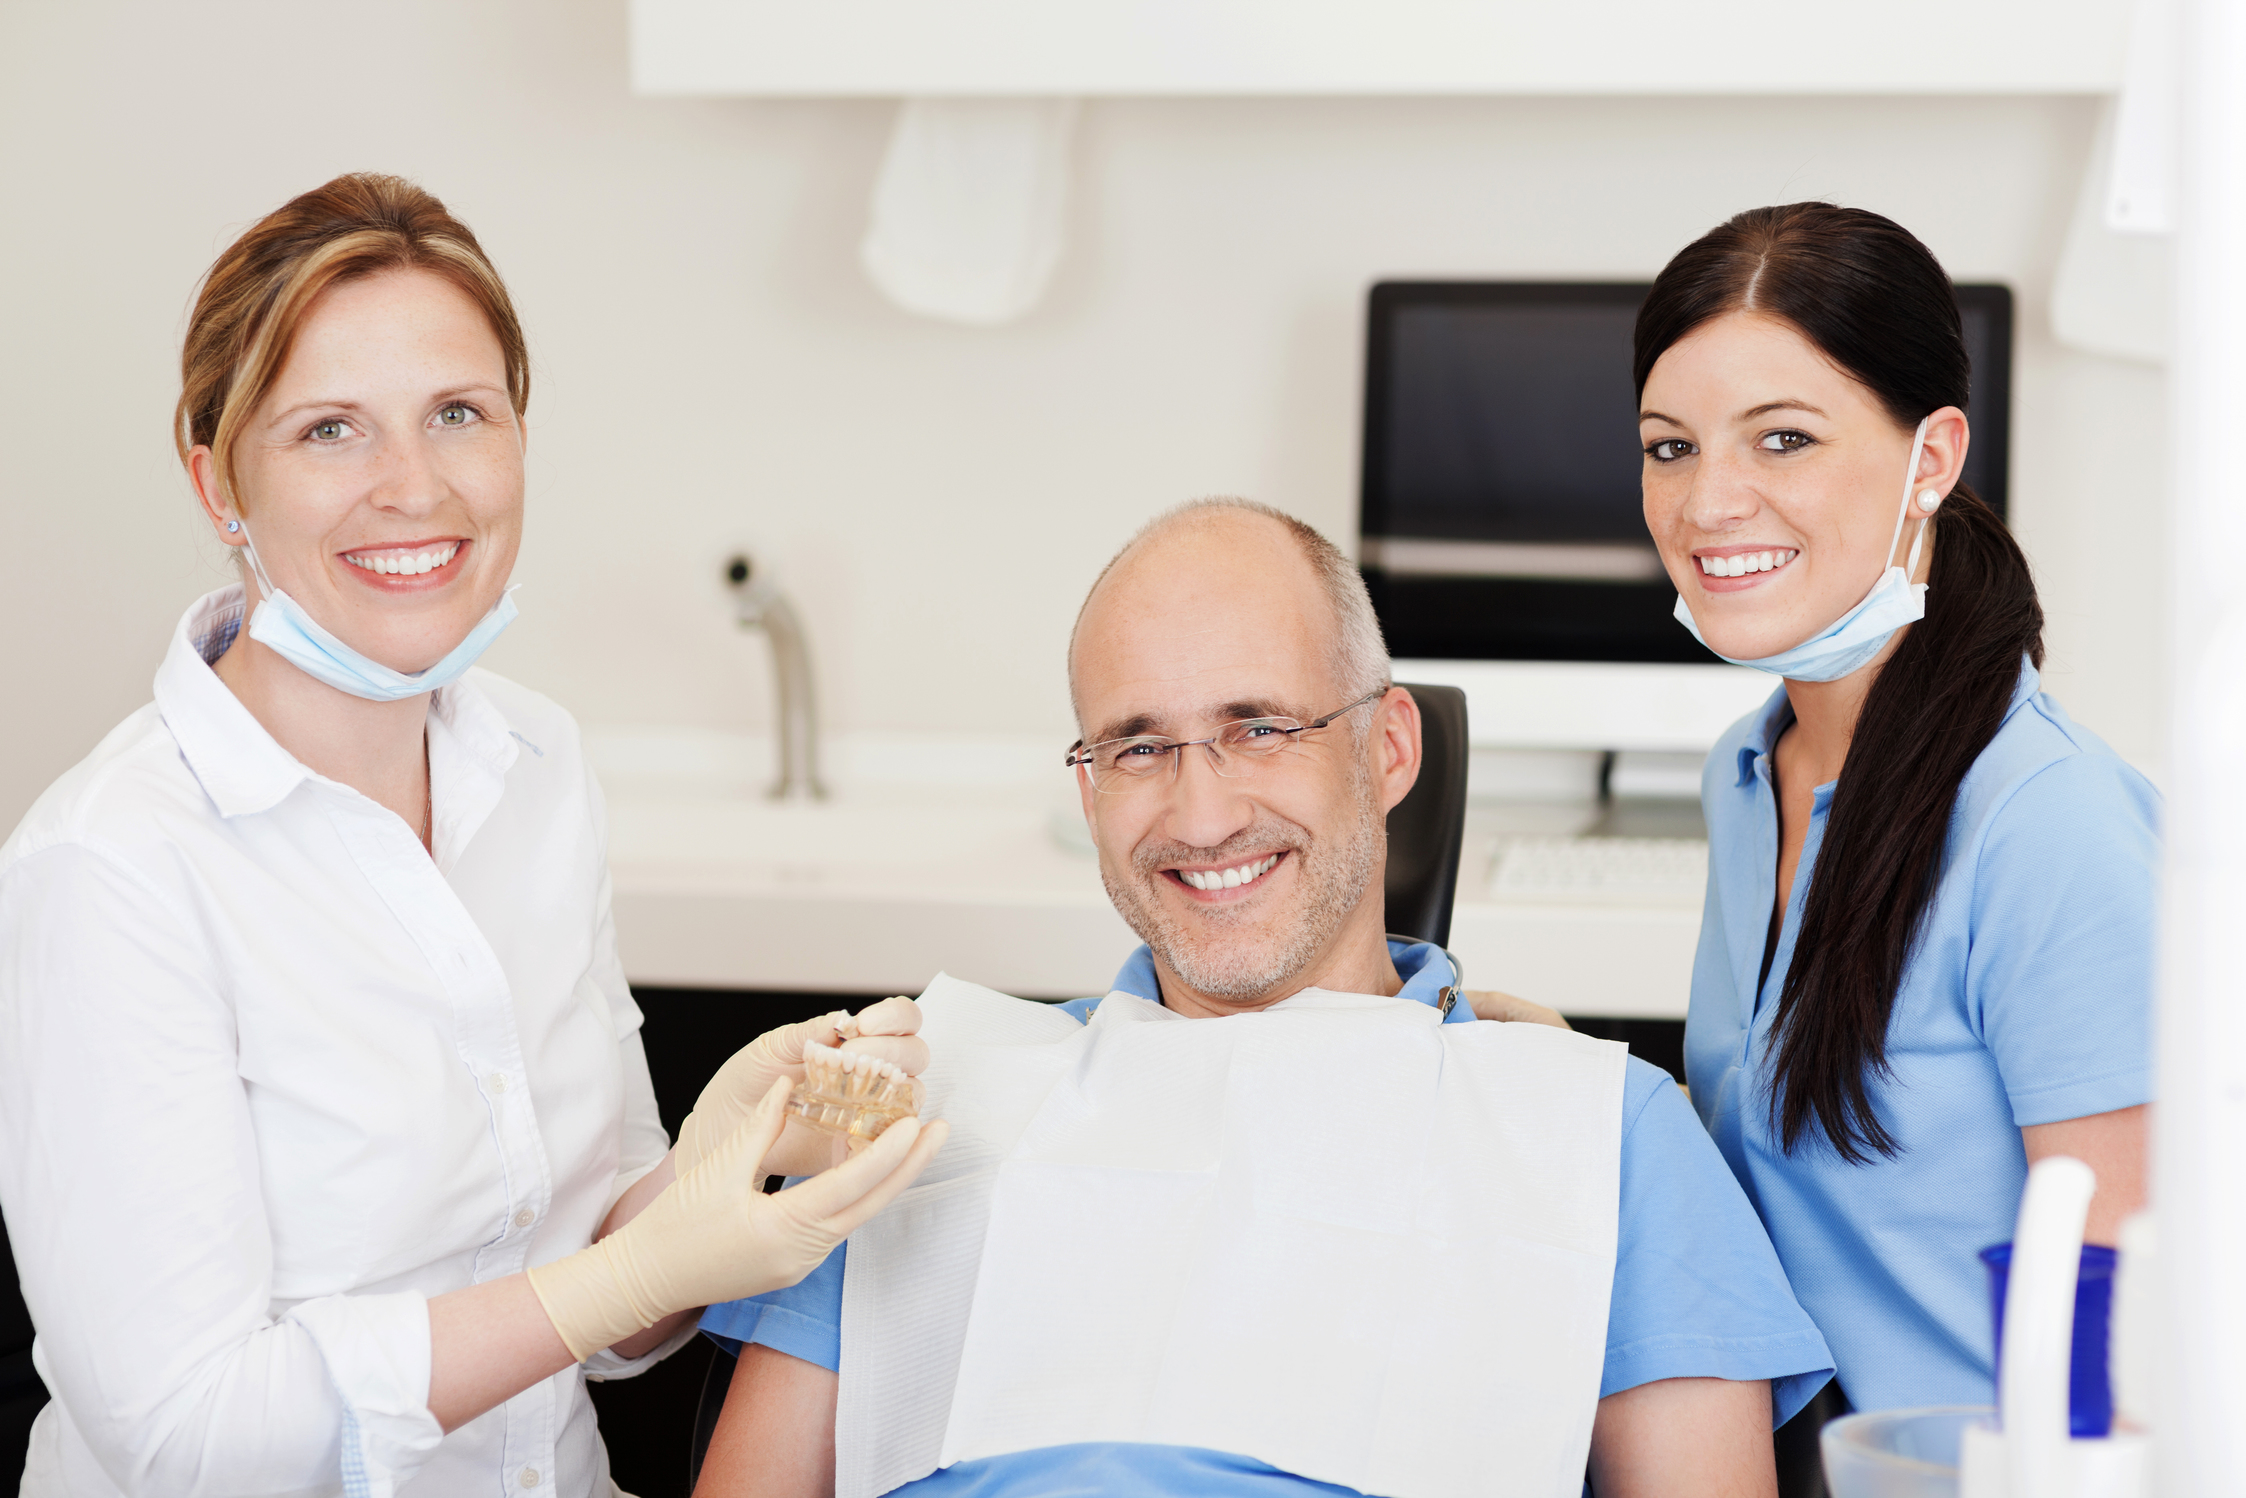 Visiting the Dentist for a Check-Up: What to Expect